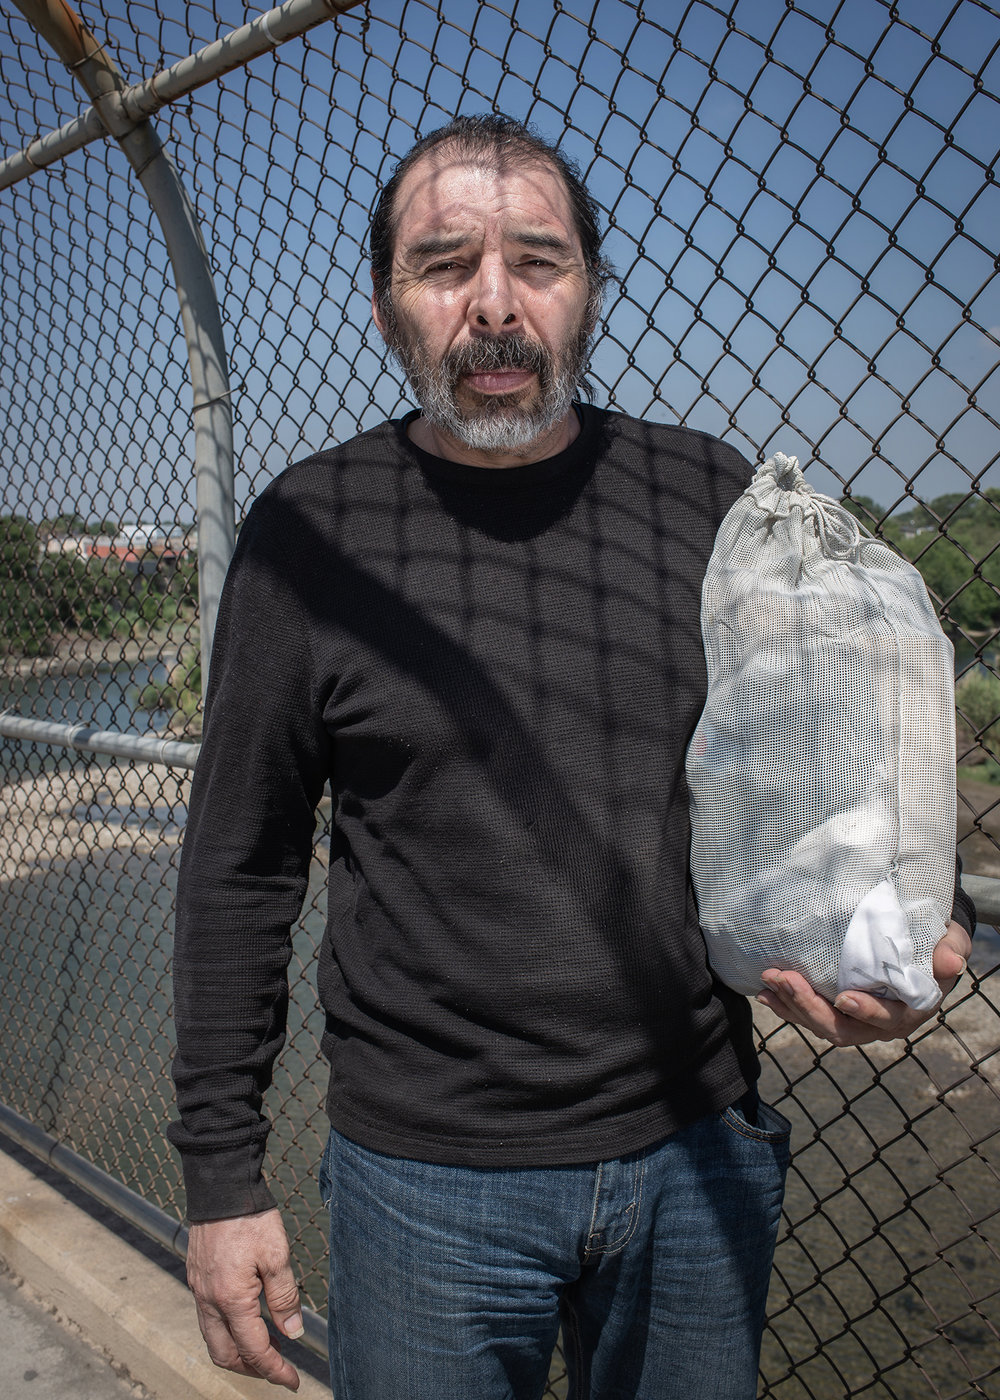 Portrait of Jesus Aragones Varal (52 years old) while crossing the Del Río / Ciudad Acuña International Bridge after being deported.  He had lived 19 years old in the United States, and had to leave his wife and son behind. Every Saturday morning a bus arrives carrying a group of deportees who were arrested and who are escorted to the Mexican side. Del Río / Ciudad Acuña International Bridge. June 23nd, 2018. Photographer: Luján Agusti.